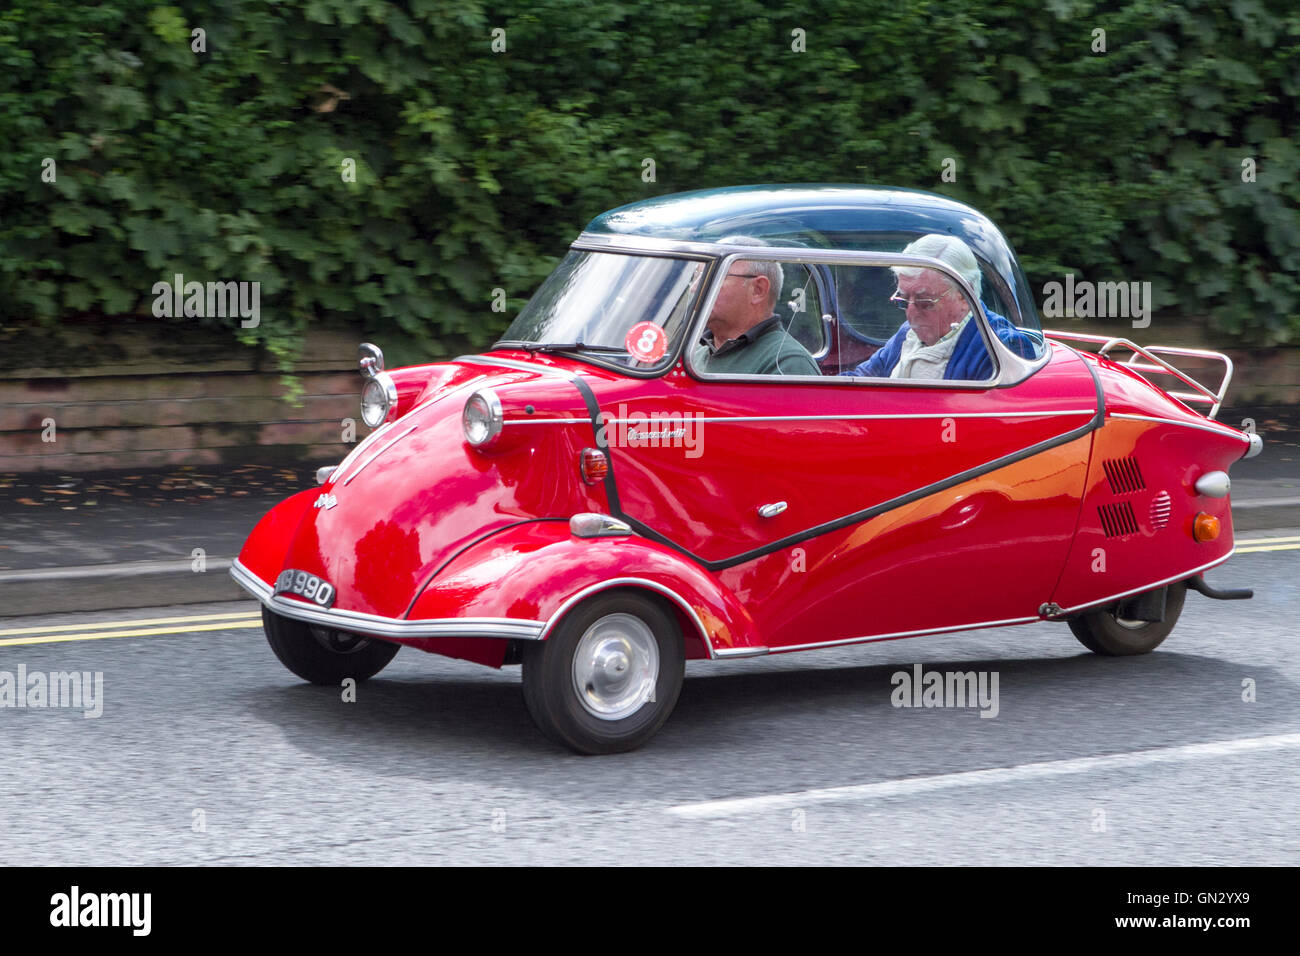 Motorfest in Ormskirk, Lancashire, UK. 28th Aug 2016.  The festival is held in the historic market town of Ormskirk - Stock Image